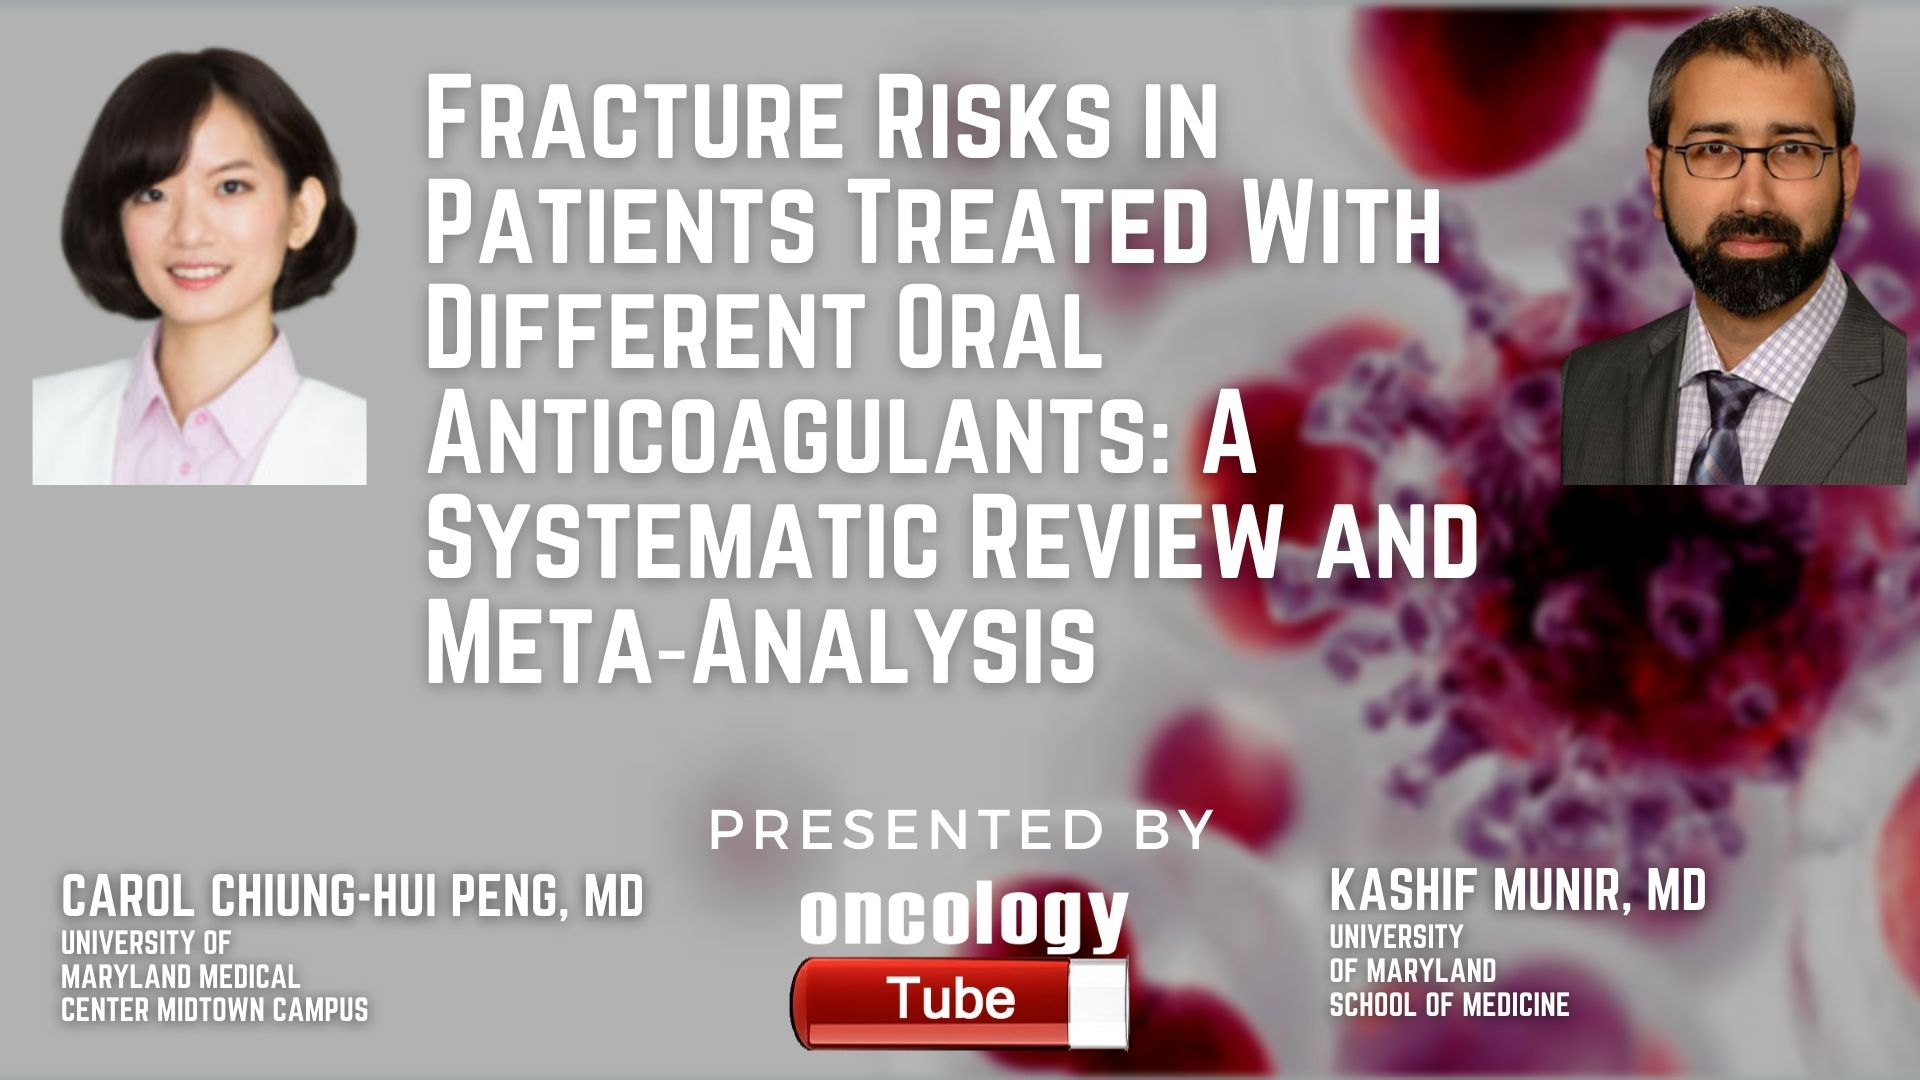 Carol Peng, MD Kashif Munir, MD @CCPeng98 @ummidtownim #HualienTzuChiHospital #Anticoagulants #Cardiology #Research Fracture Risks in Patients Treated With Different Oral Anticoagulants